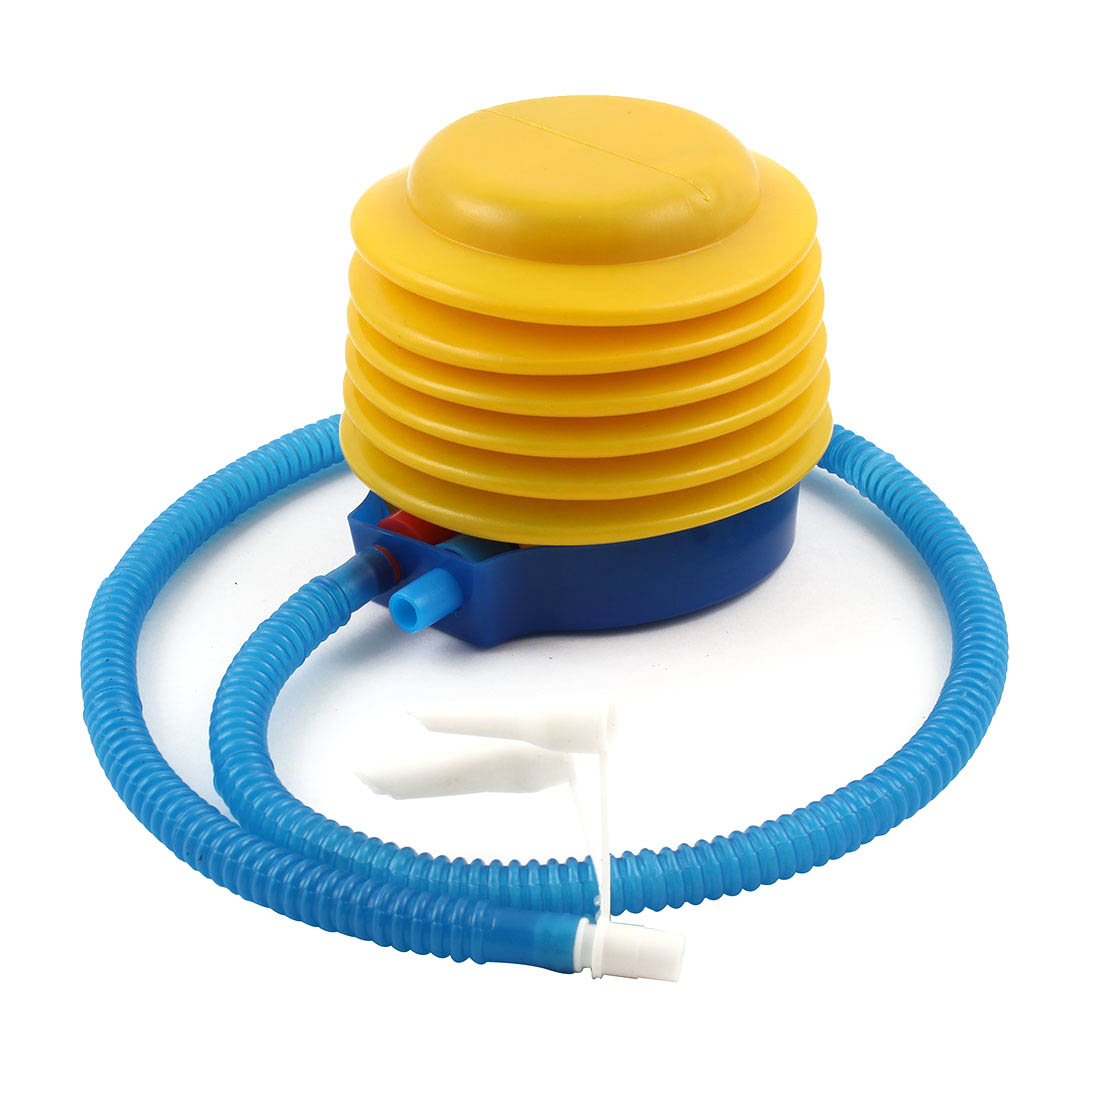 Balloon Plastic Easy Hand Foot Operated Air Bellow Pump Inflator Blue Yellow